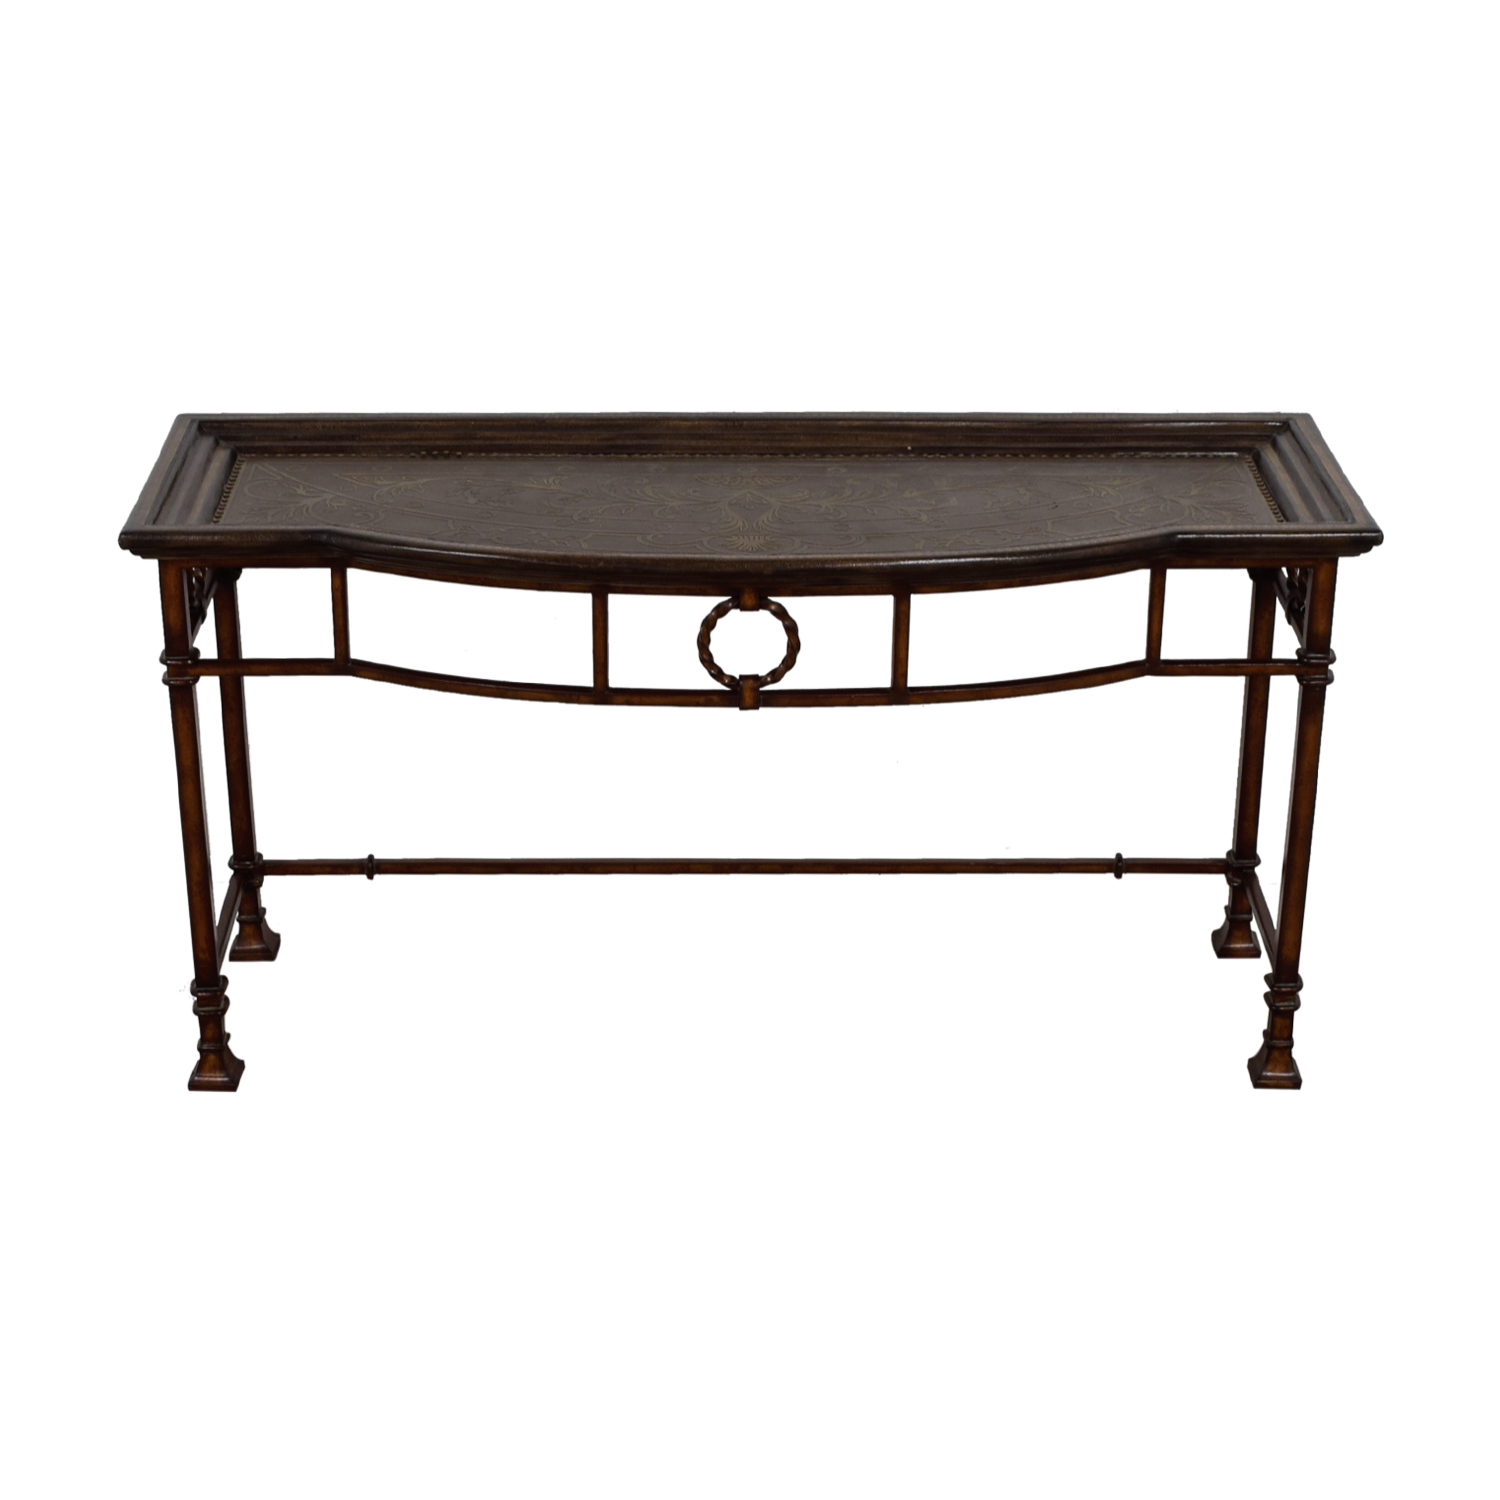 Carved Wood Console Table dimensions